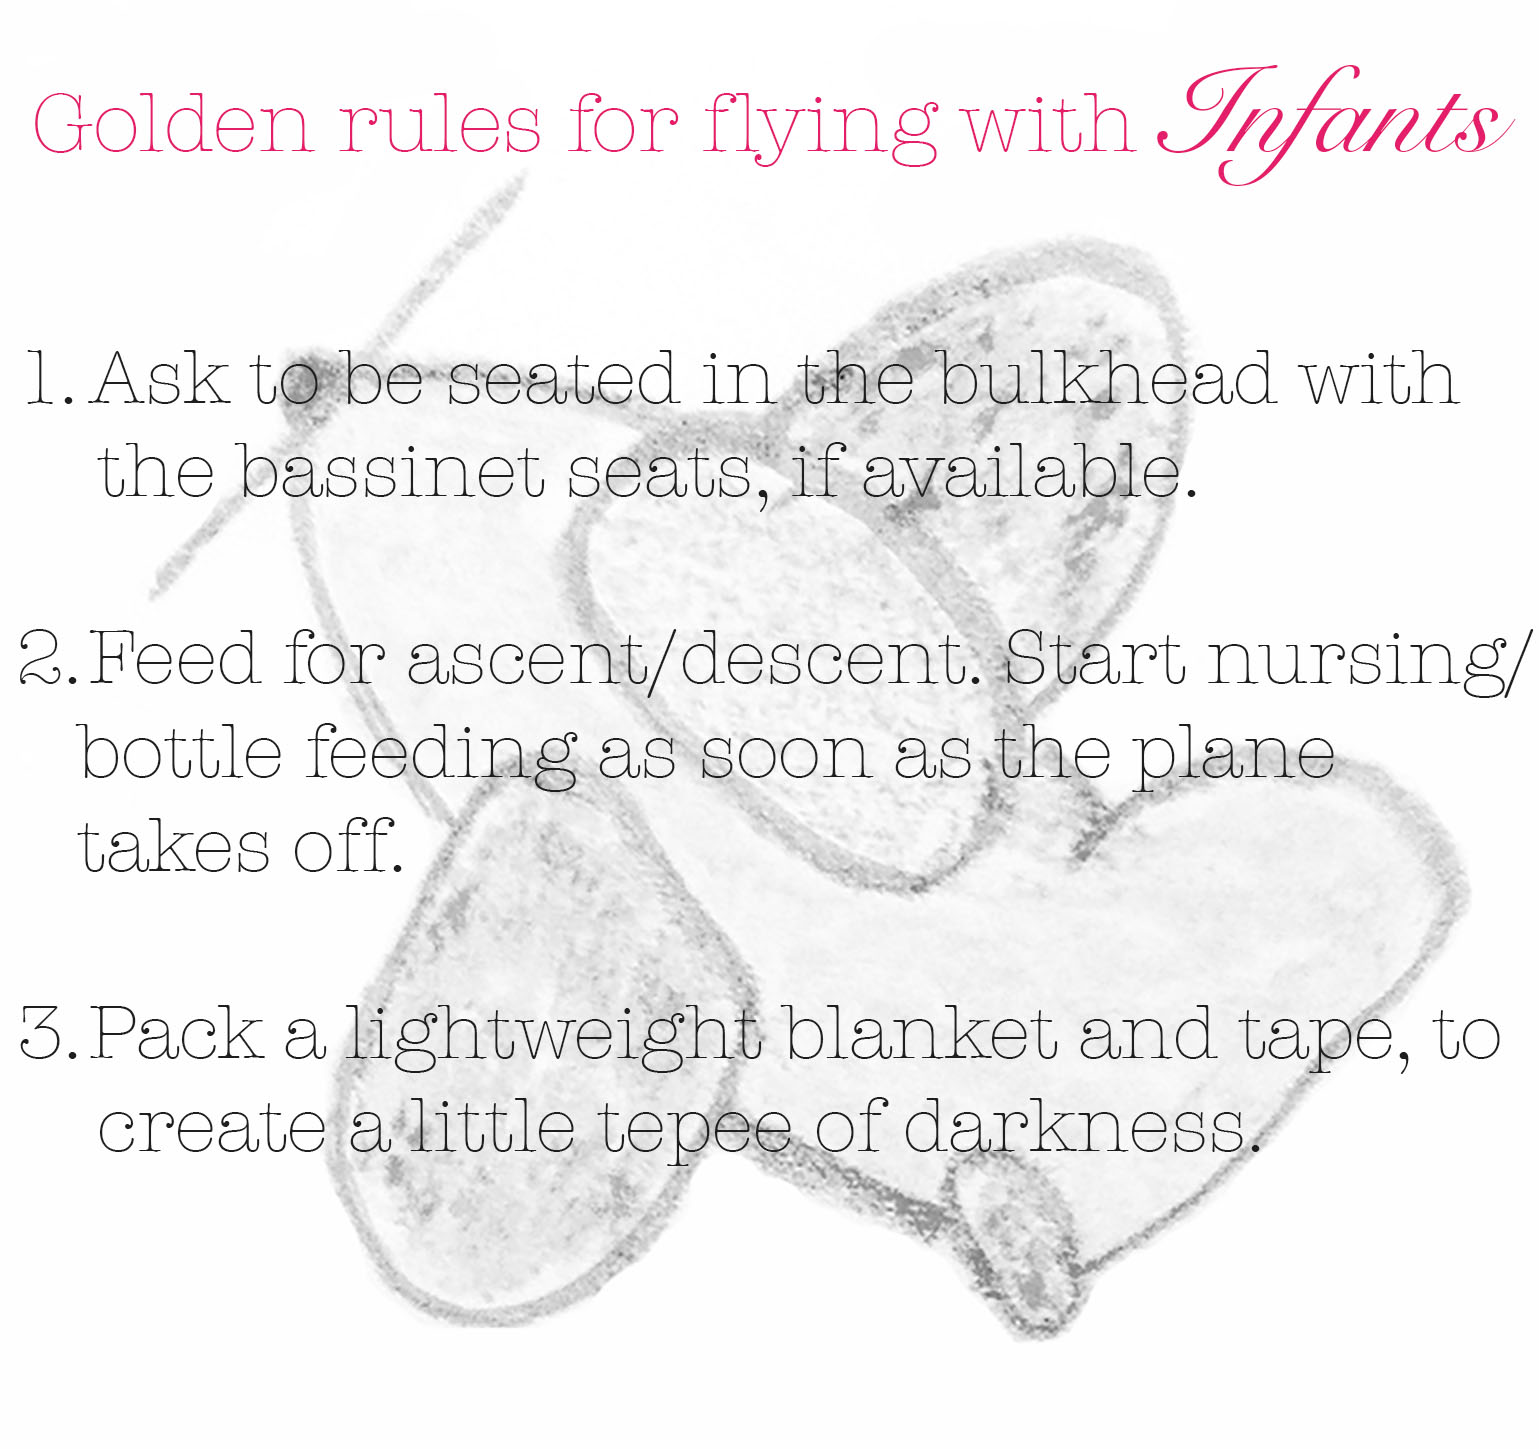 meg-made golden rules for flying with infants